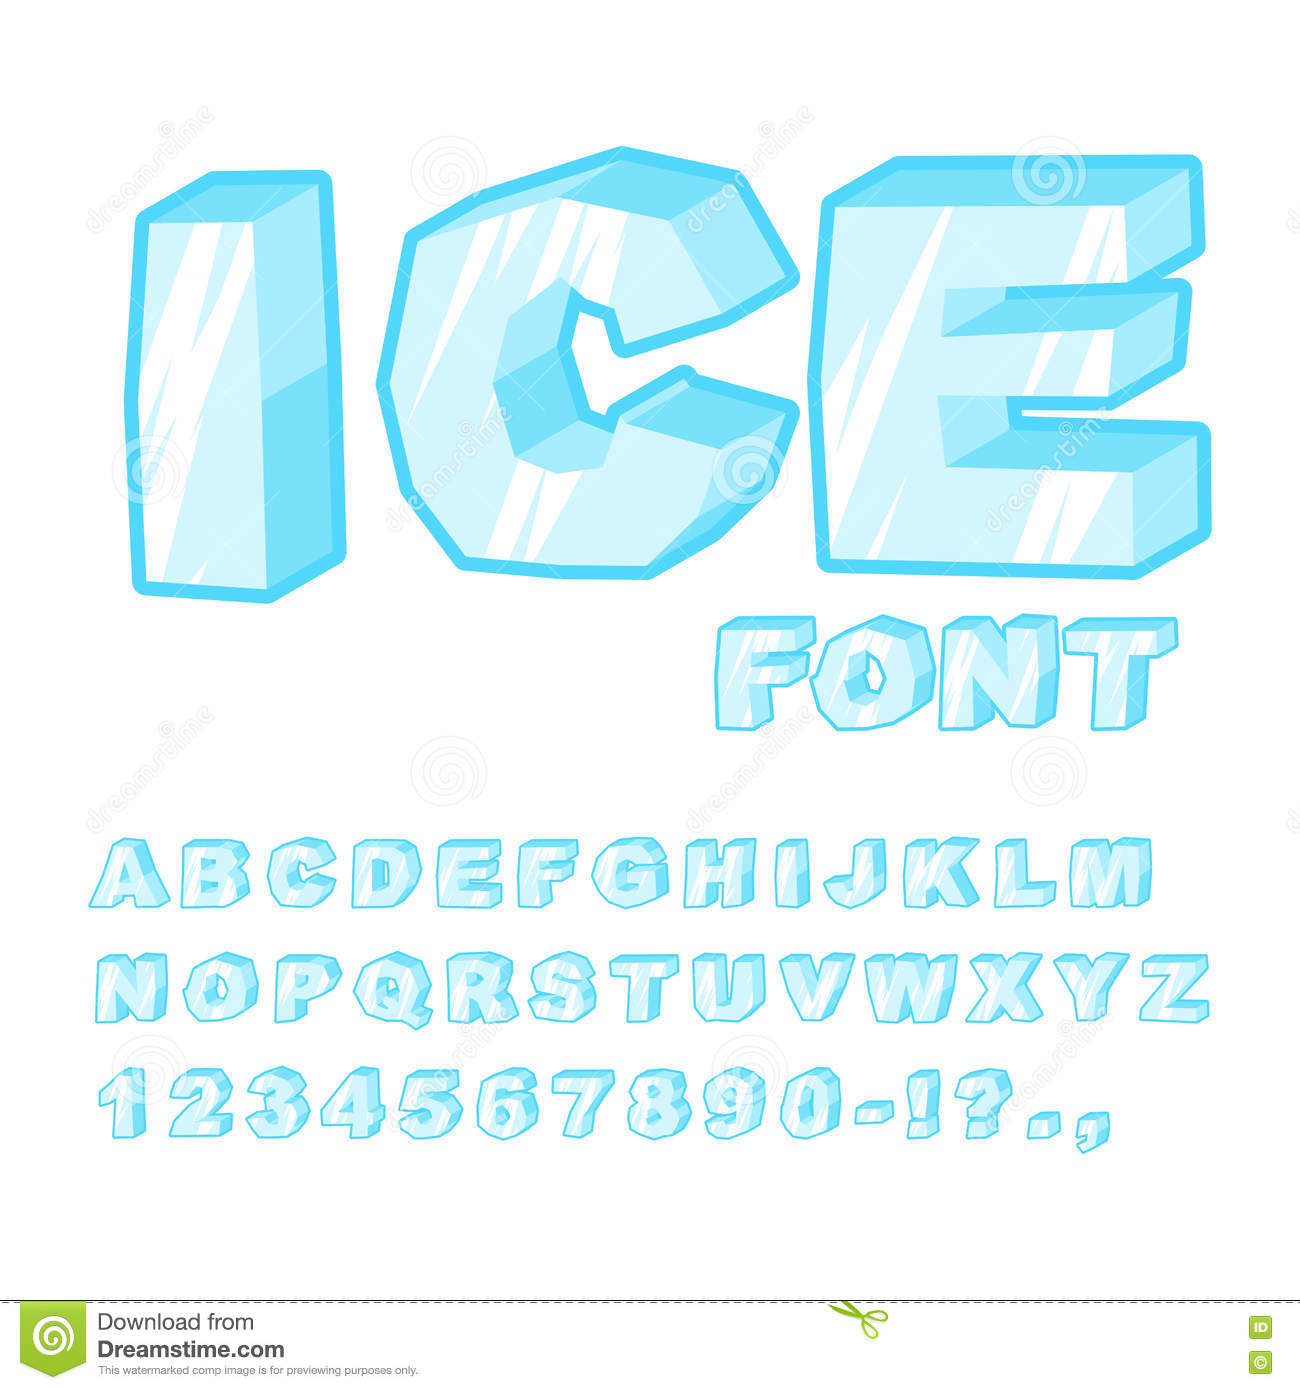 Frosty winter font download.